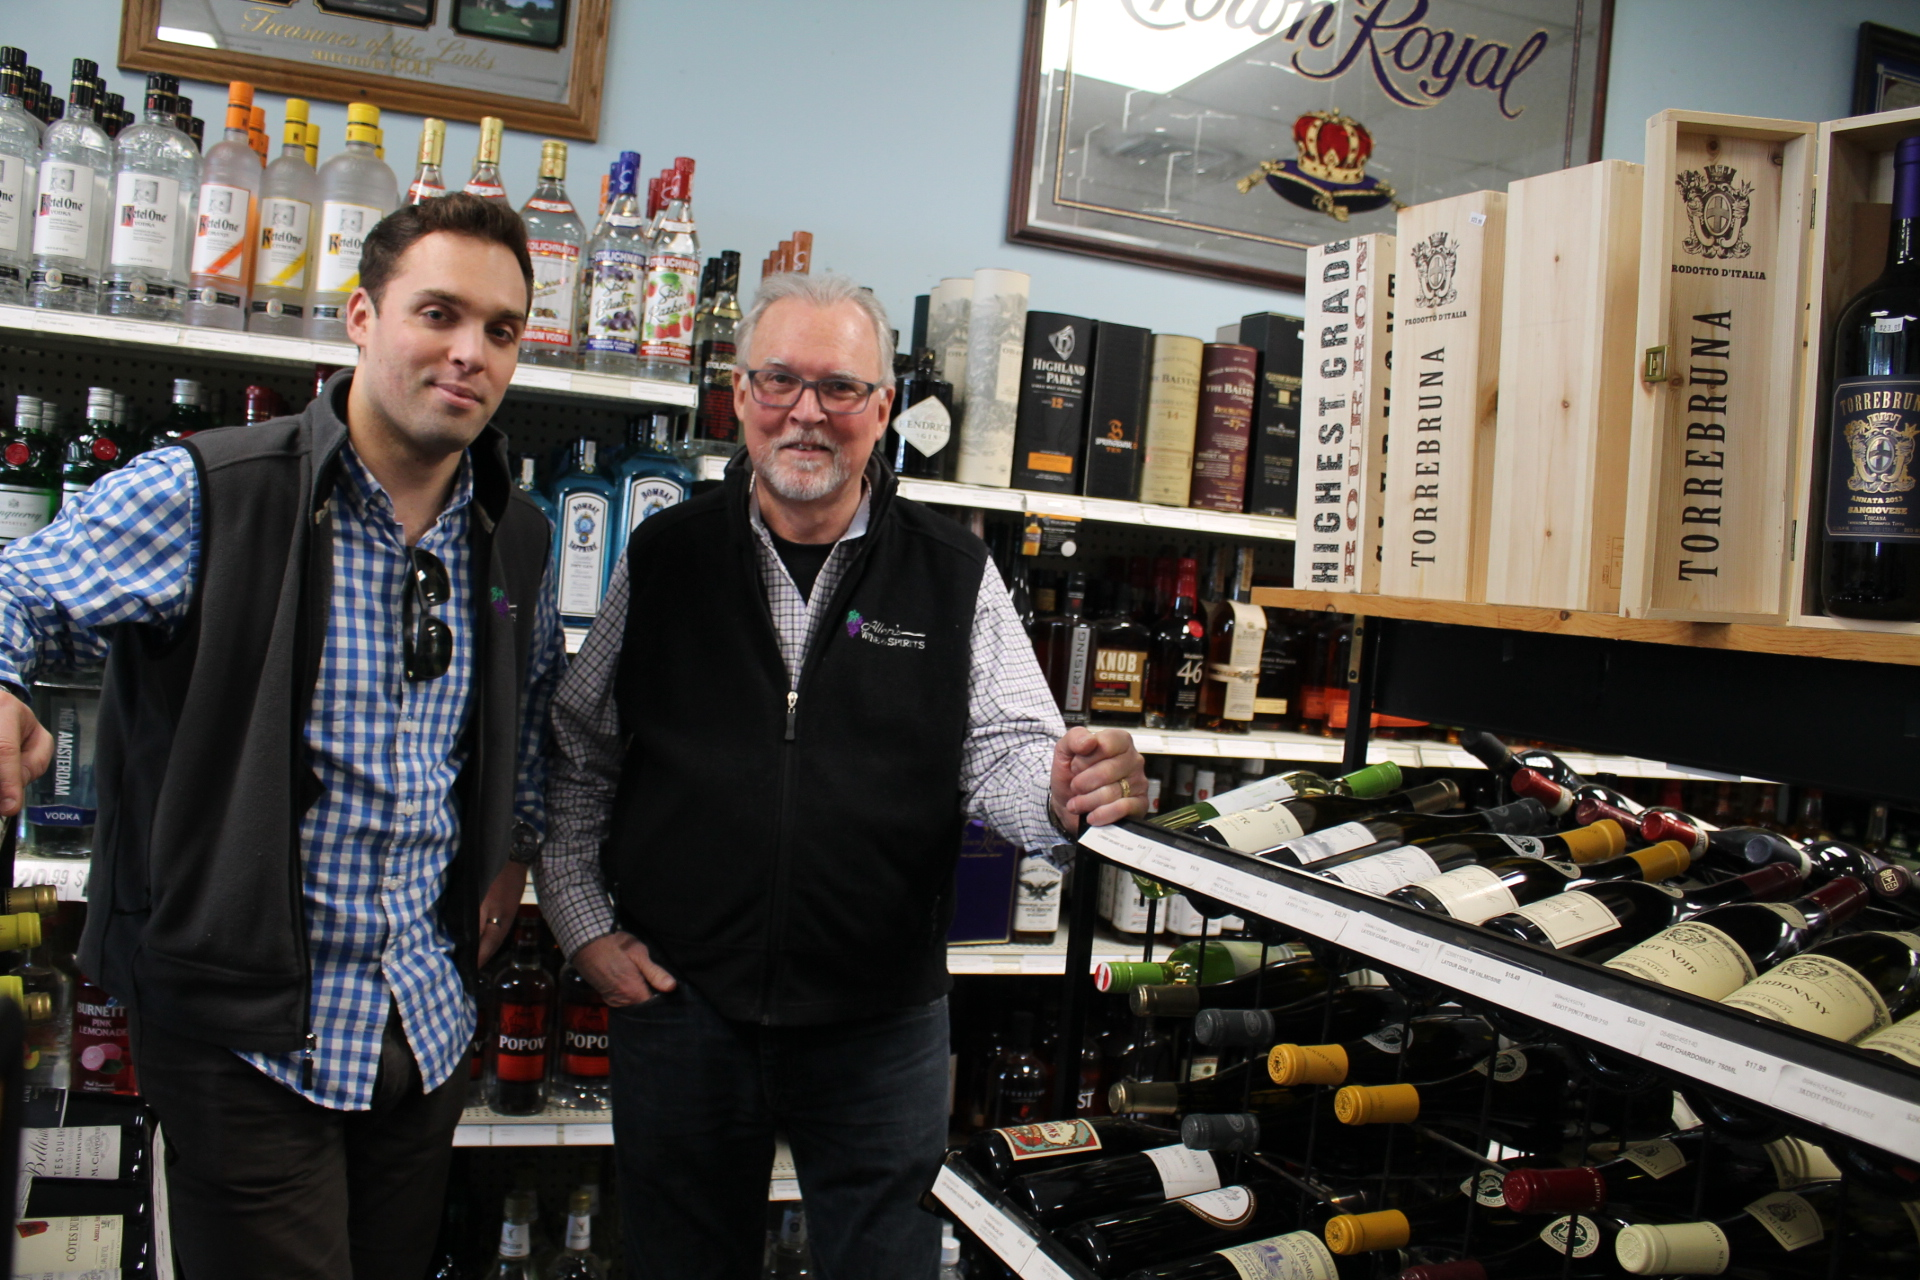 Retail Review: Allen's Wine and Spirits